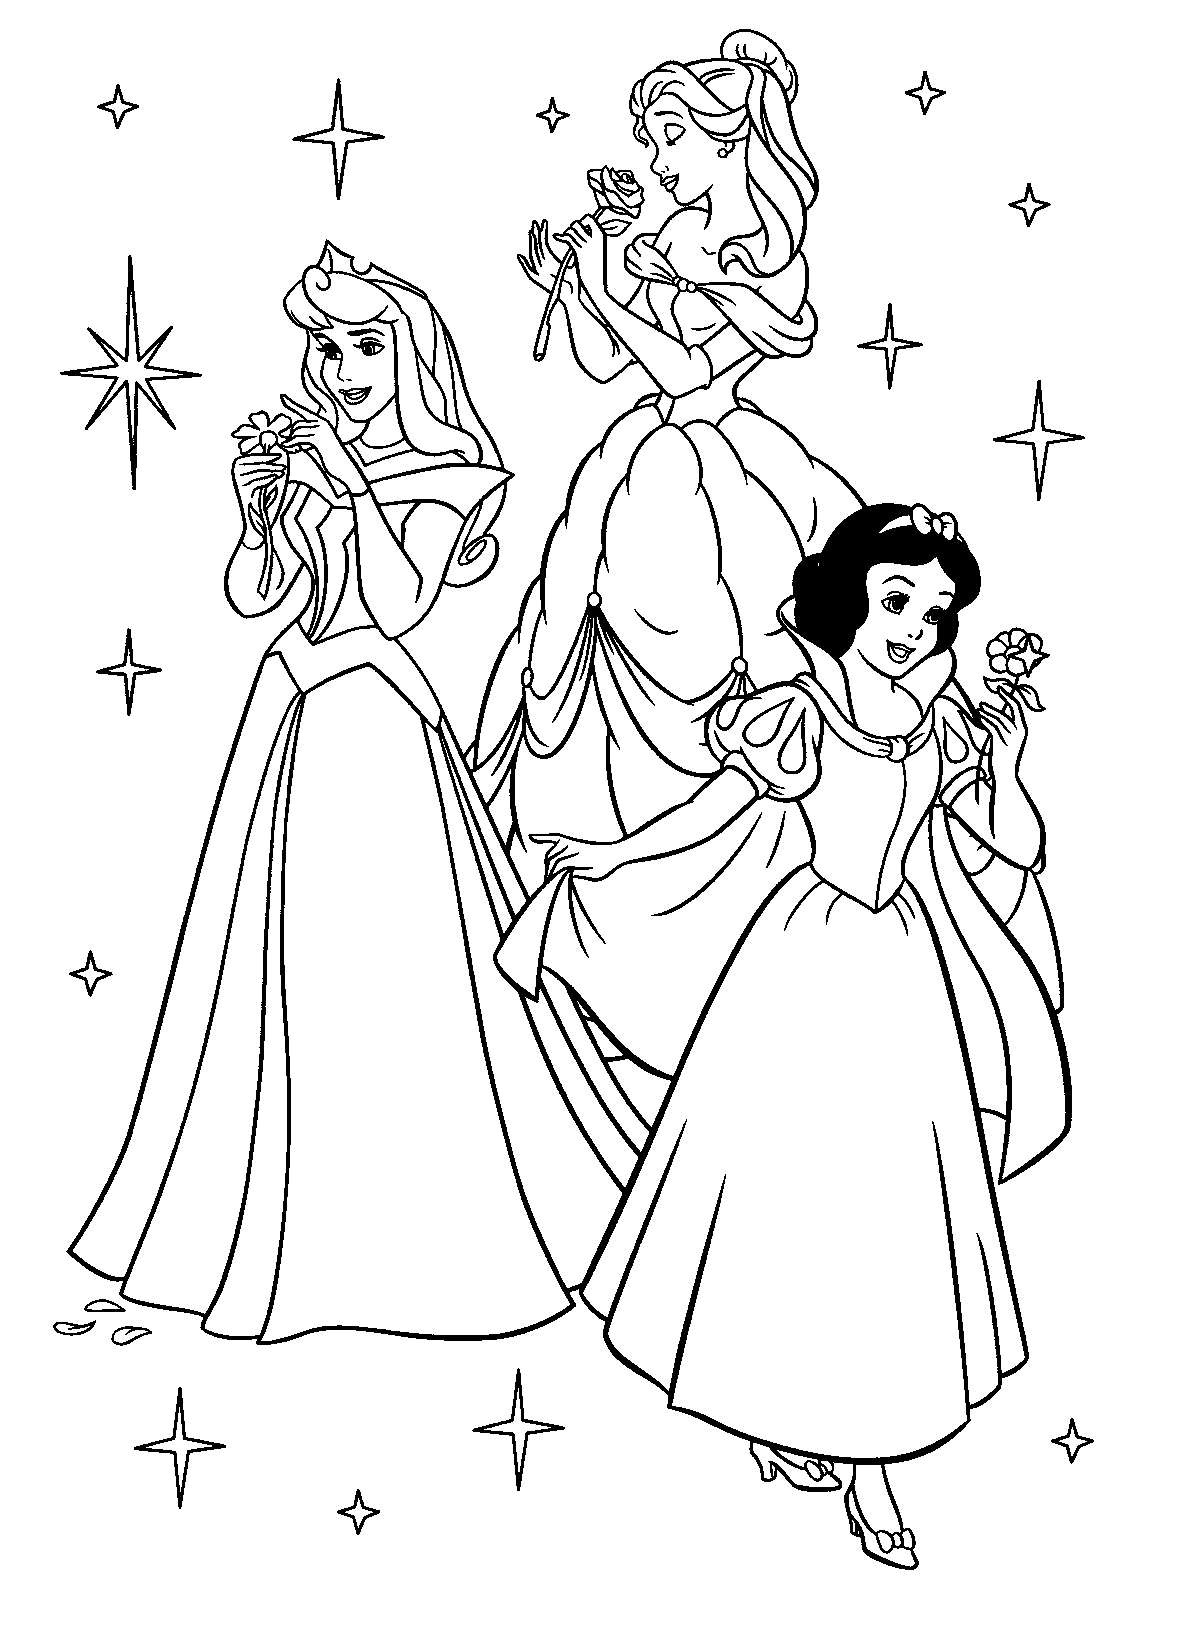 Free coloring disney princess pages - Disney Princess Coloring Pages